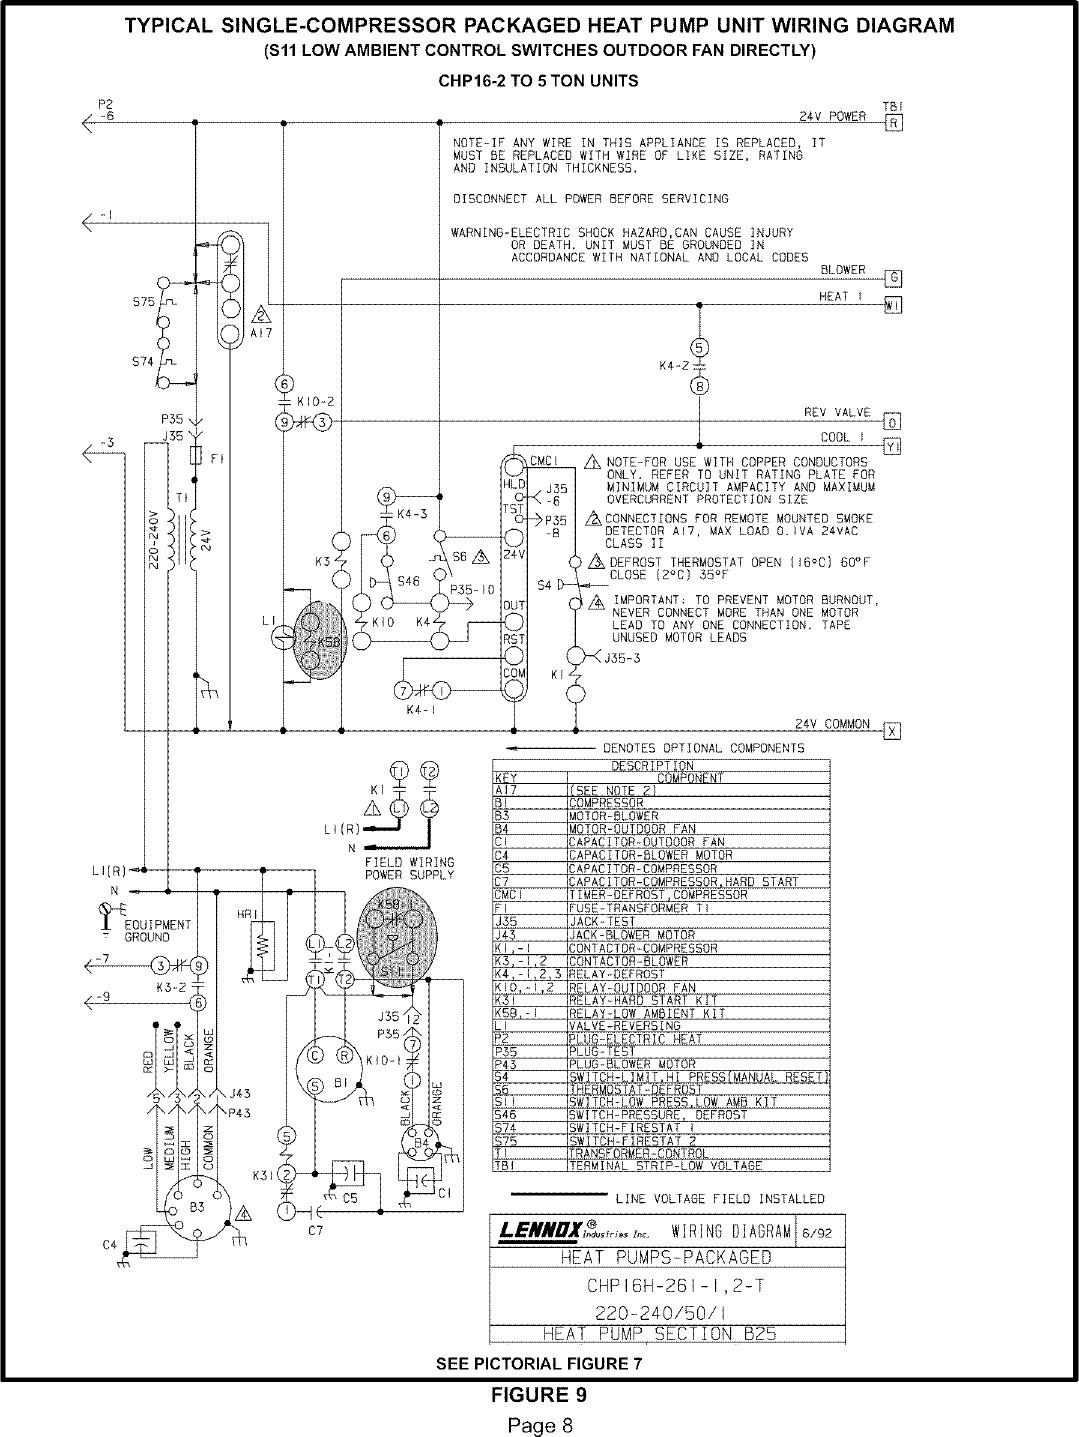 LENNOX Controls And HVAC Accessories Manual L0806303